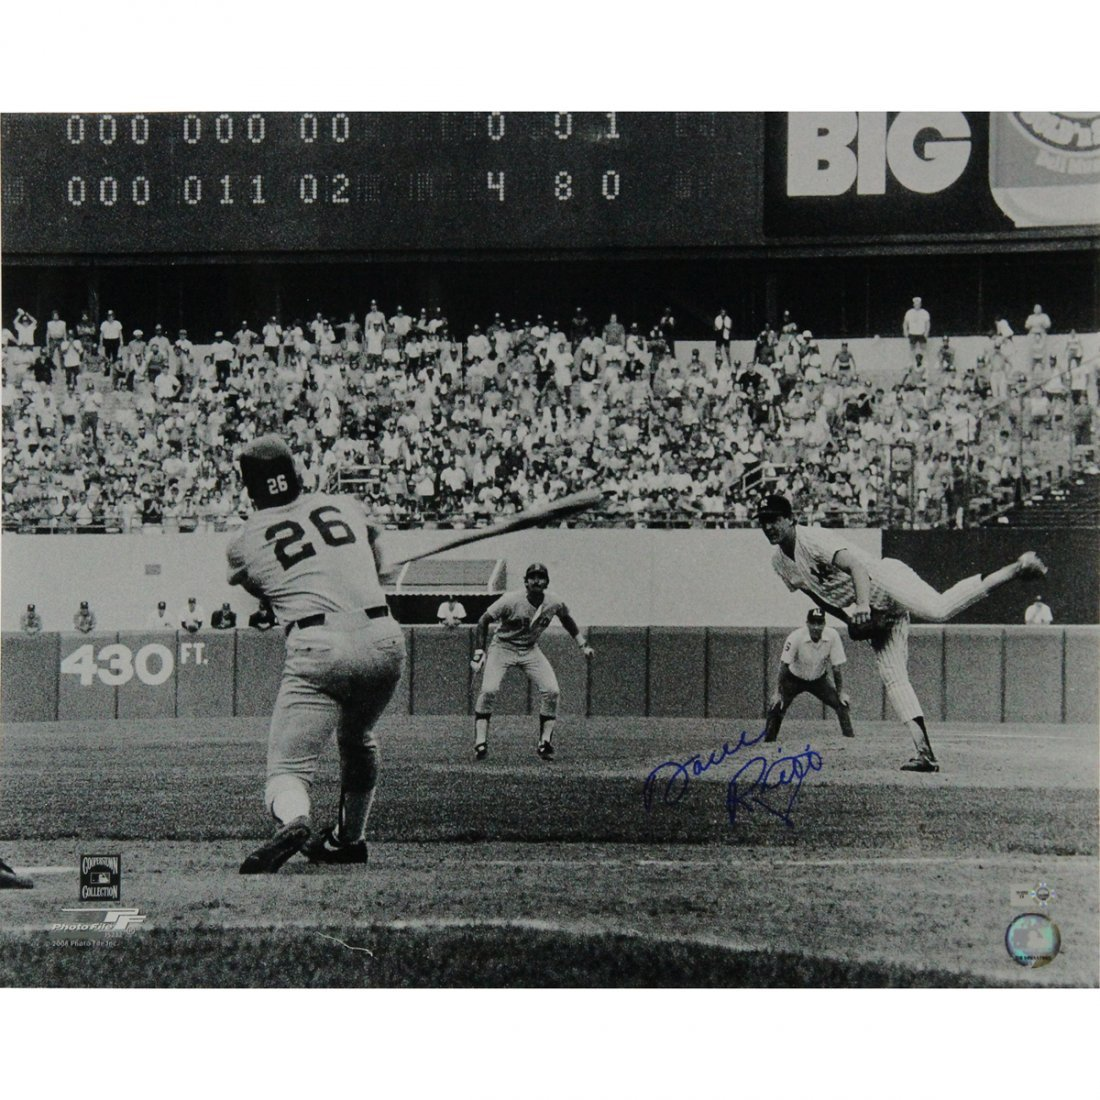 Dave Righetti No Hitter Scoreboard 16x20 Photo (MLB Aut